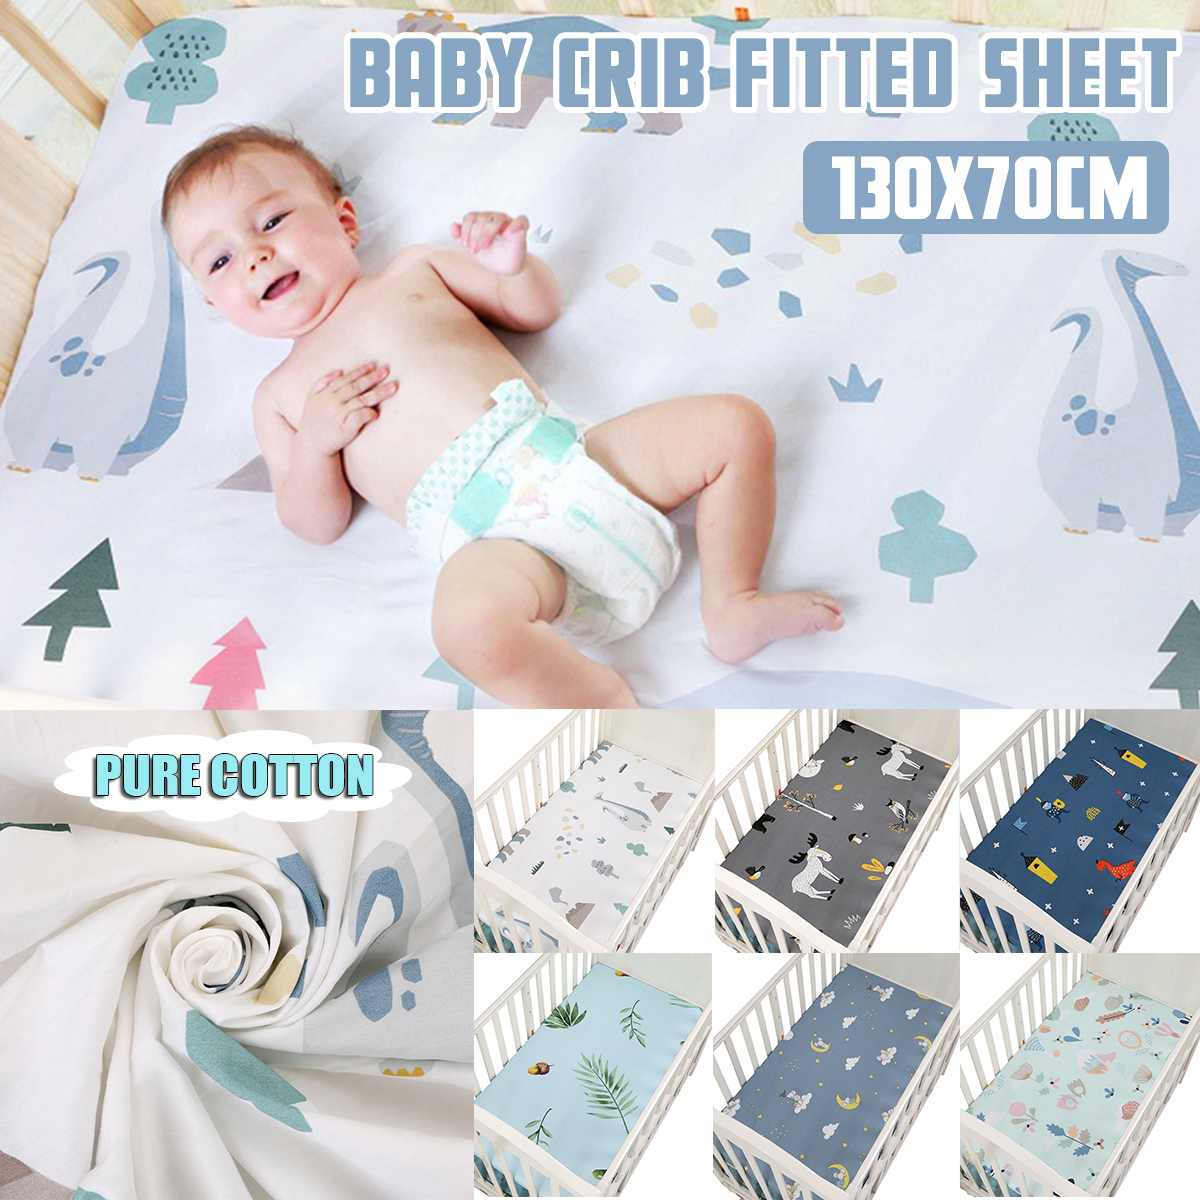 New 100% Cotton Crib Fitted Sheet Soft Breathable Baby Bed Mattress Cover Cartoon Newborn Bedding For Cot Sheet Size 130x70cm